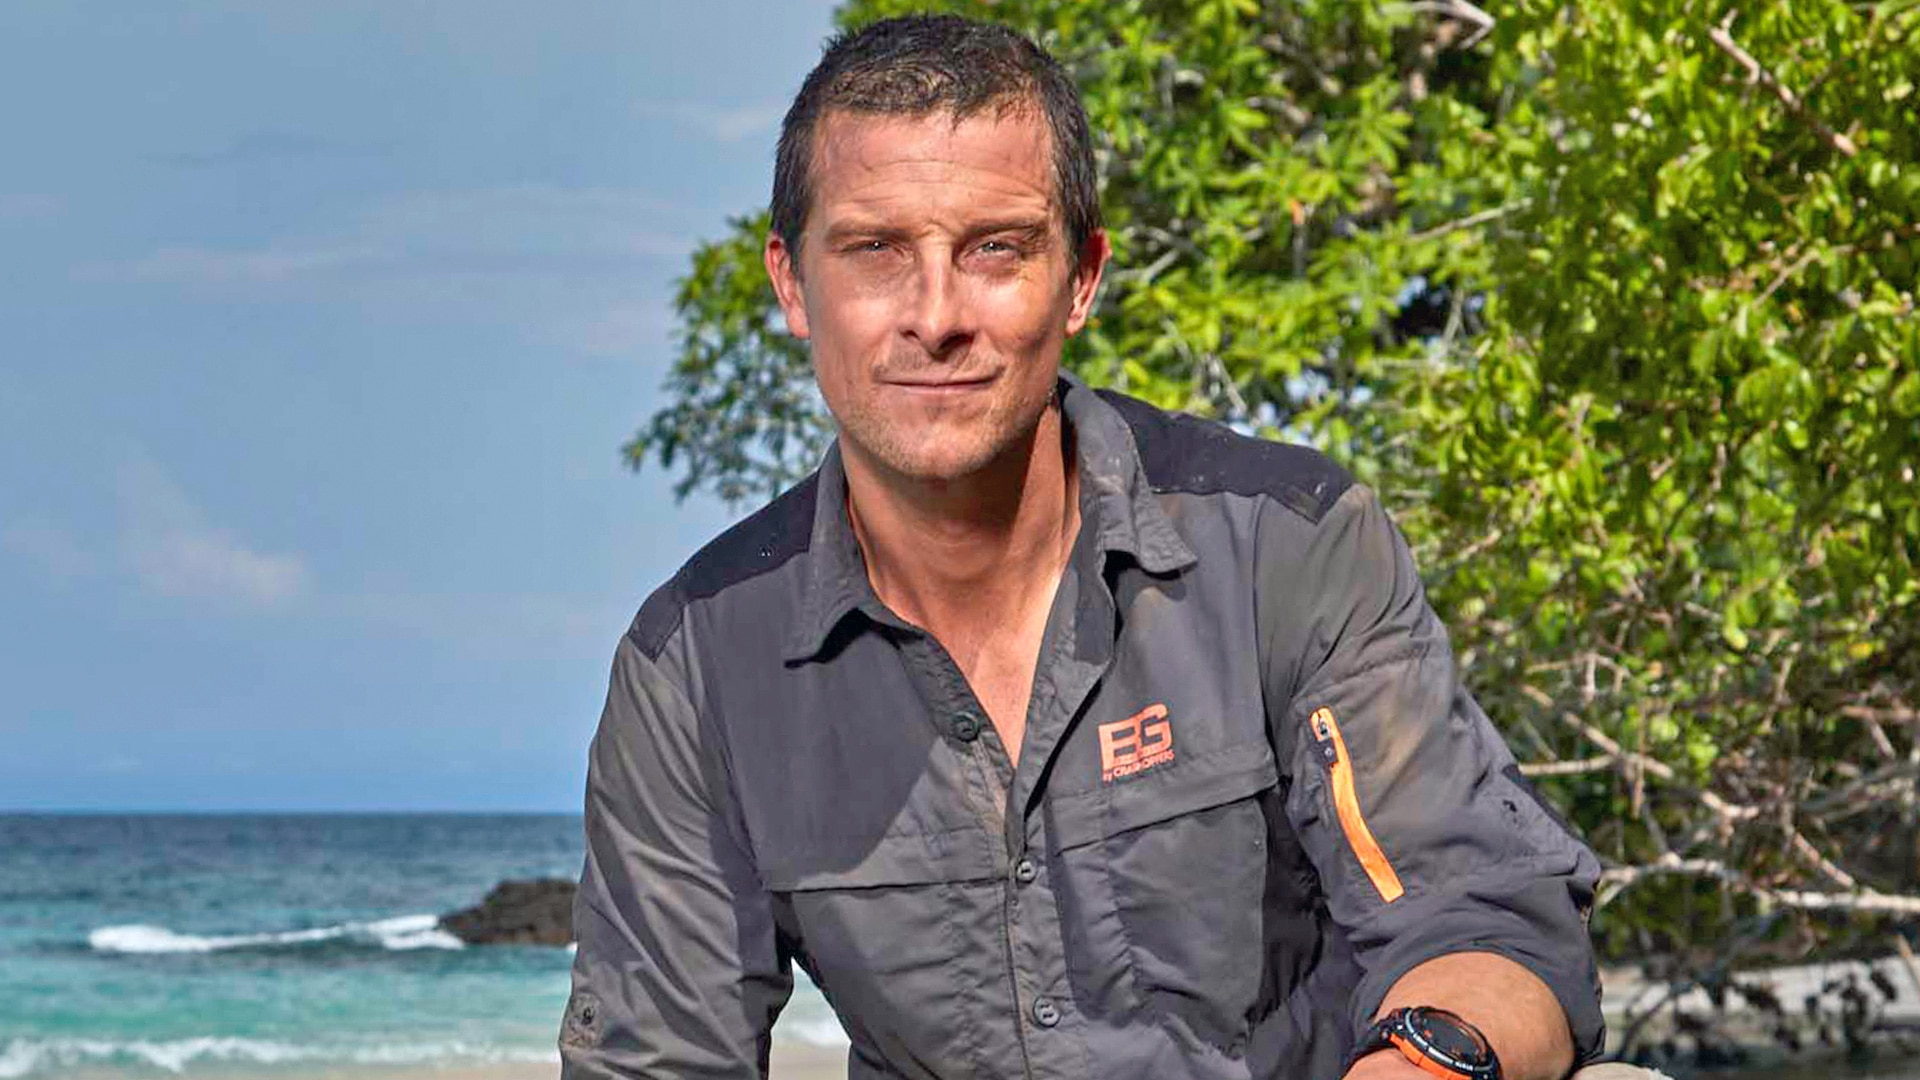 from Israel bear grylls naked with tribe